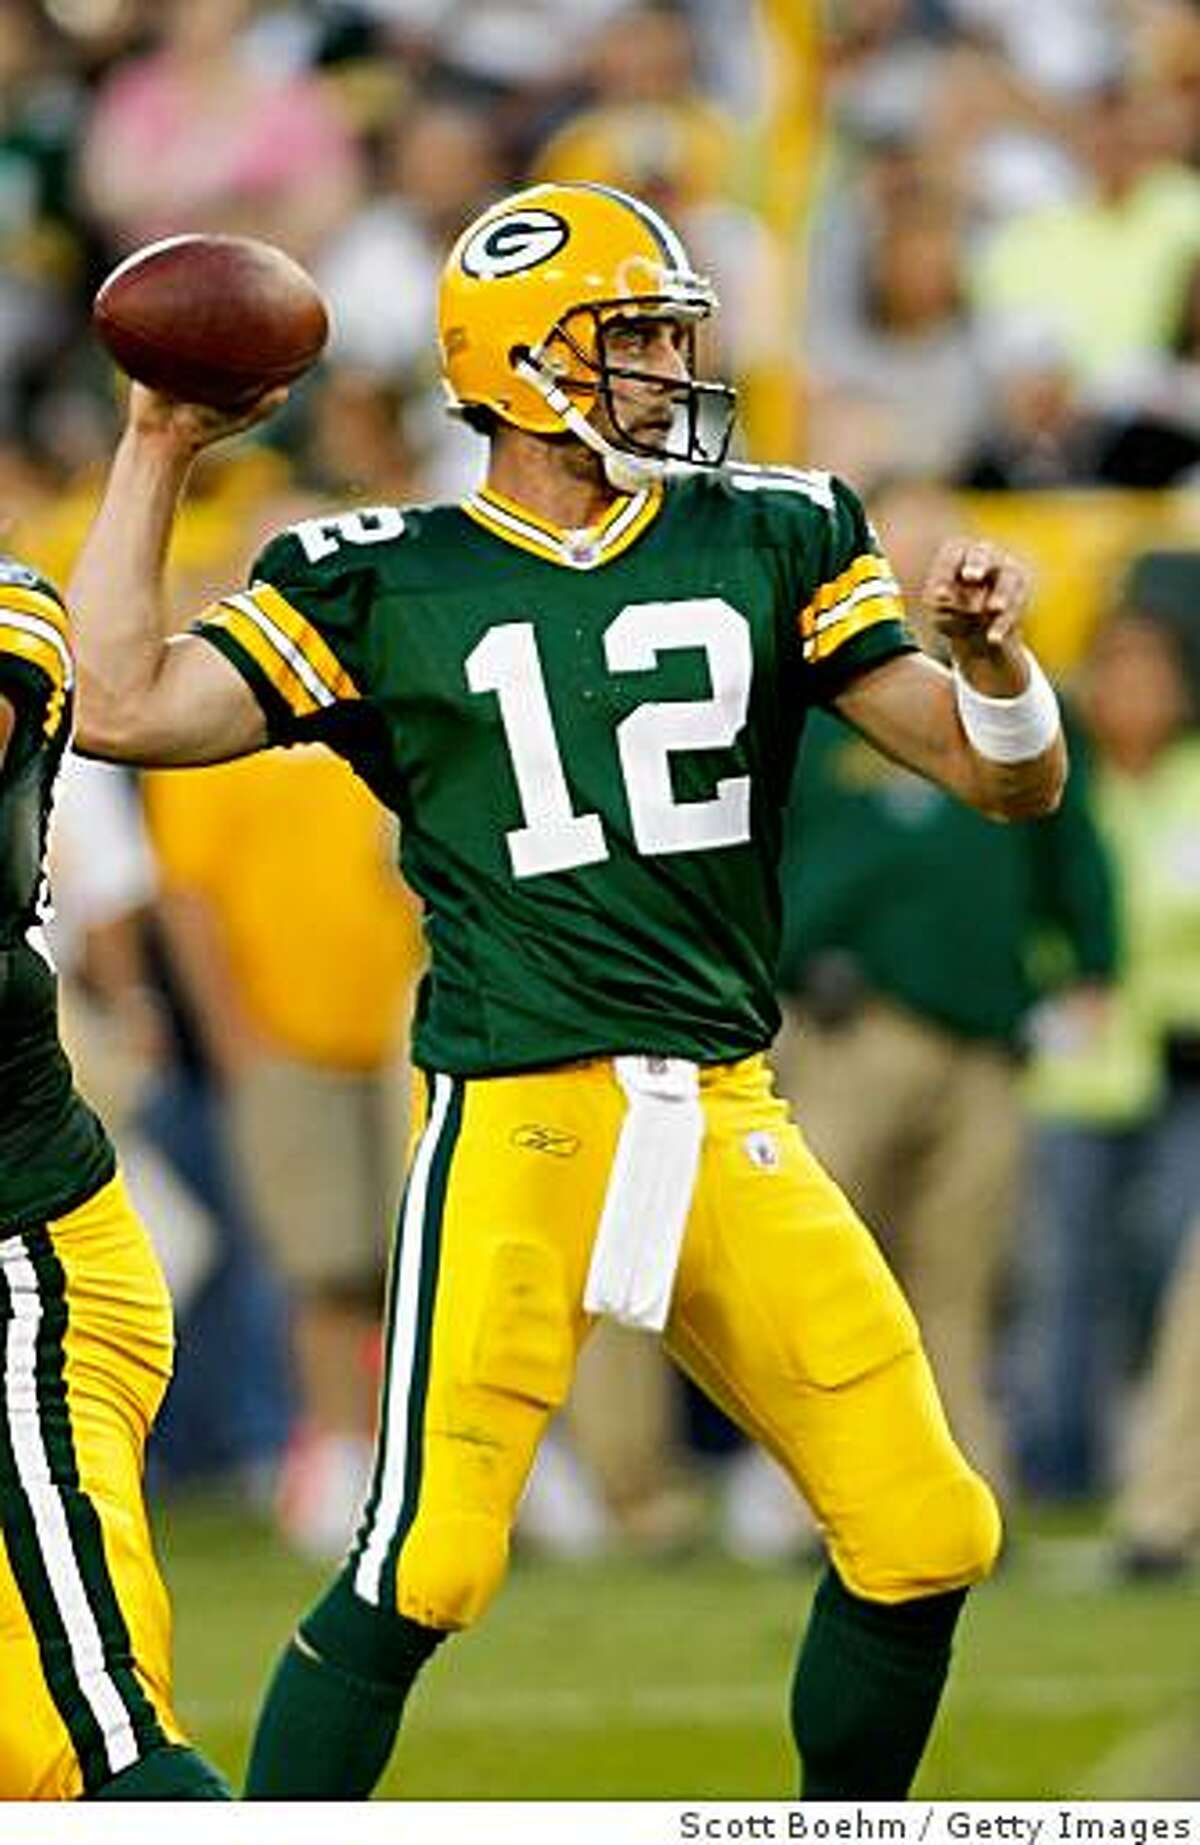 GREEN BAY, WI - AUGUST 11: Quarterback Aaron Rogers #12 of the Green Bay Packers passes the football against the Cincinnati Bengals at the Lambeau Field on August 11, 2008 in Green Bay, Wisconsin. The Bengals defeated the Packers 20-17. (Photo by Scott Boehm/Getty Images)